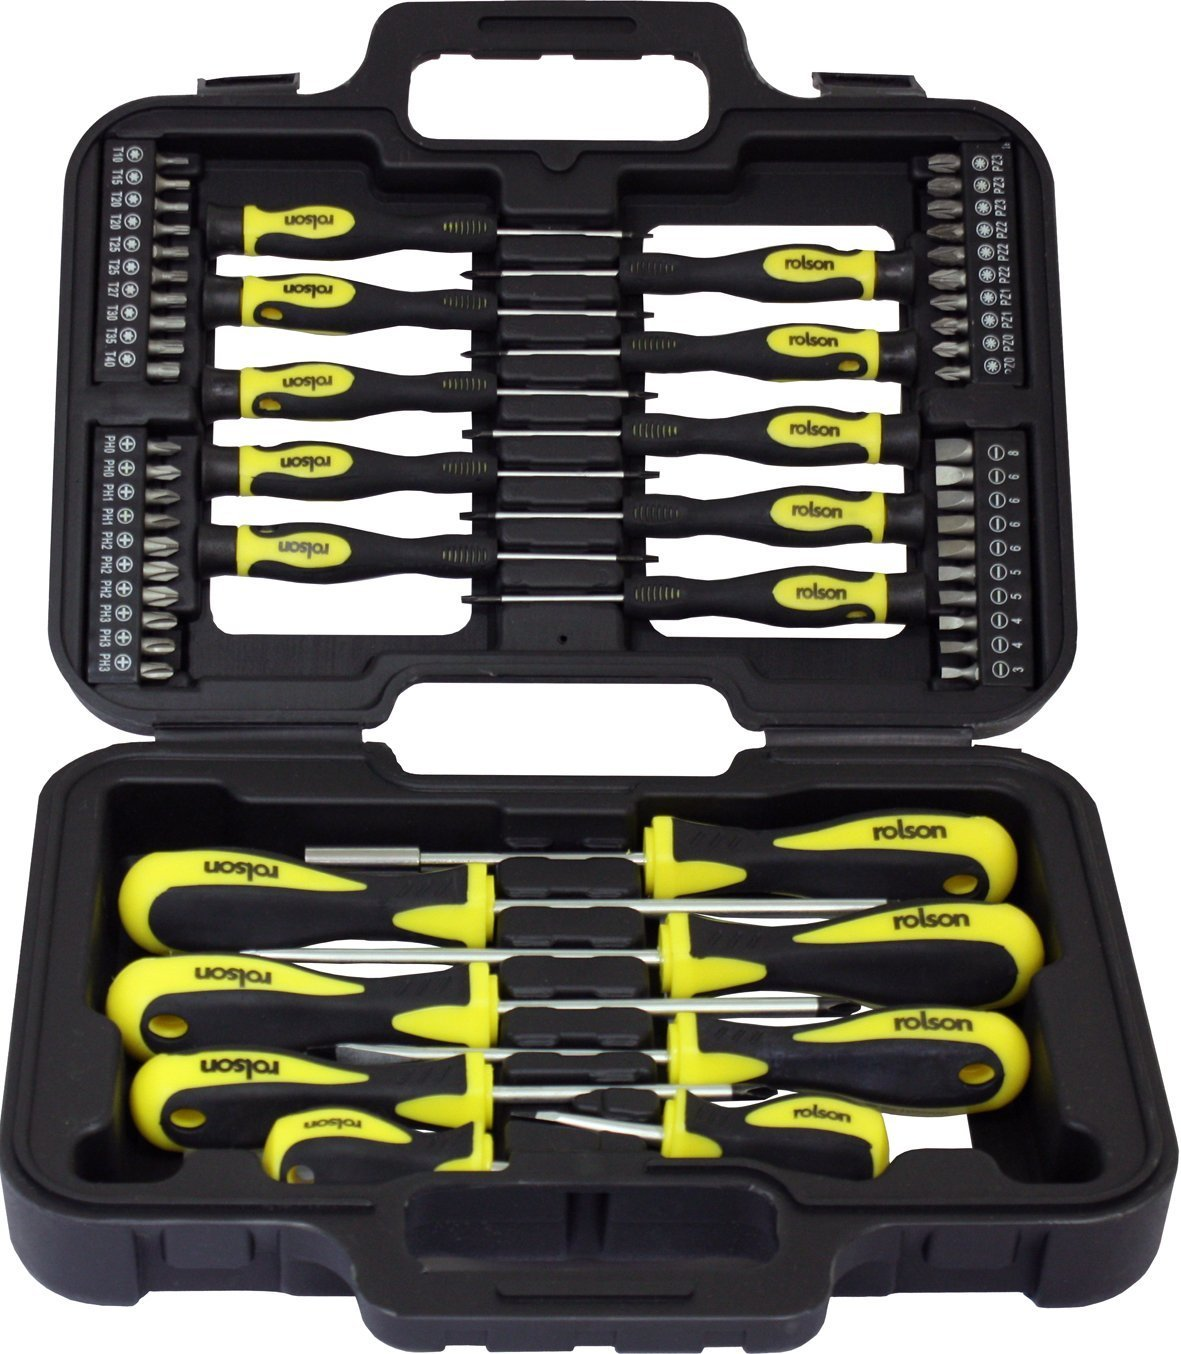 rolson screwdriver bit set 58 pcs cross star point bit holder home tools ebay. Black Bedroom Furniture Sets. Home Design Ideas